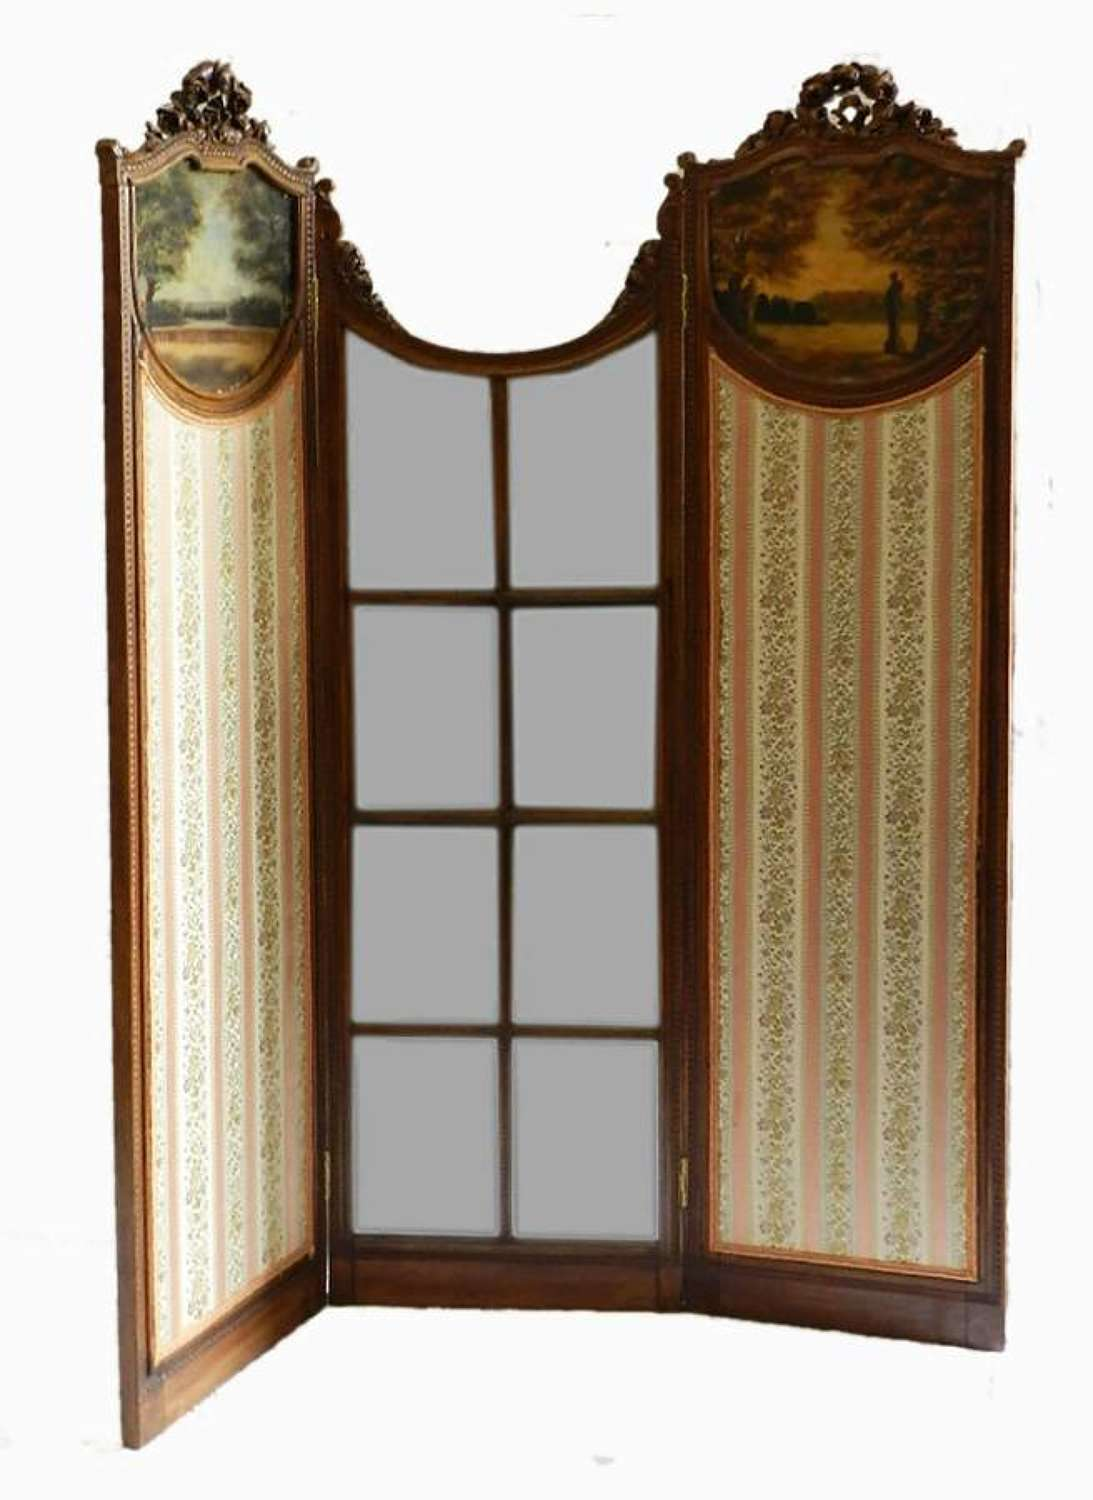 C19 French Screen 3 fold with Mirror & Paintings Dressing Draught Room Divider